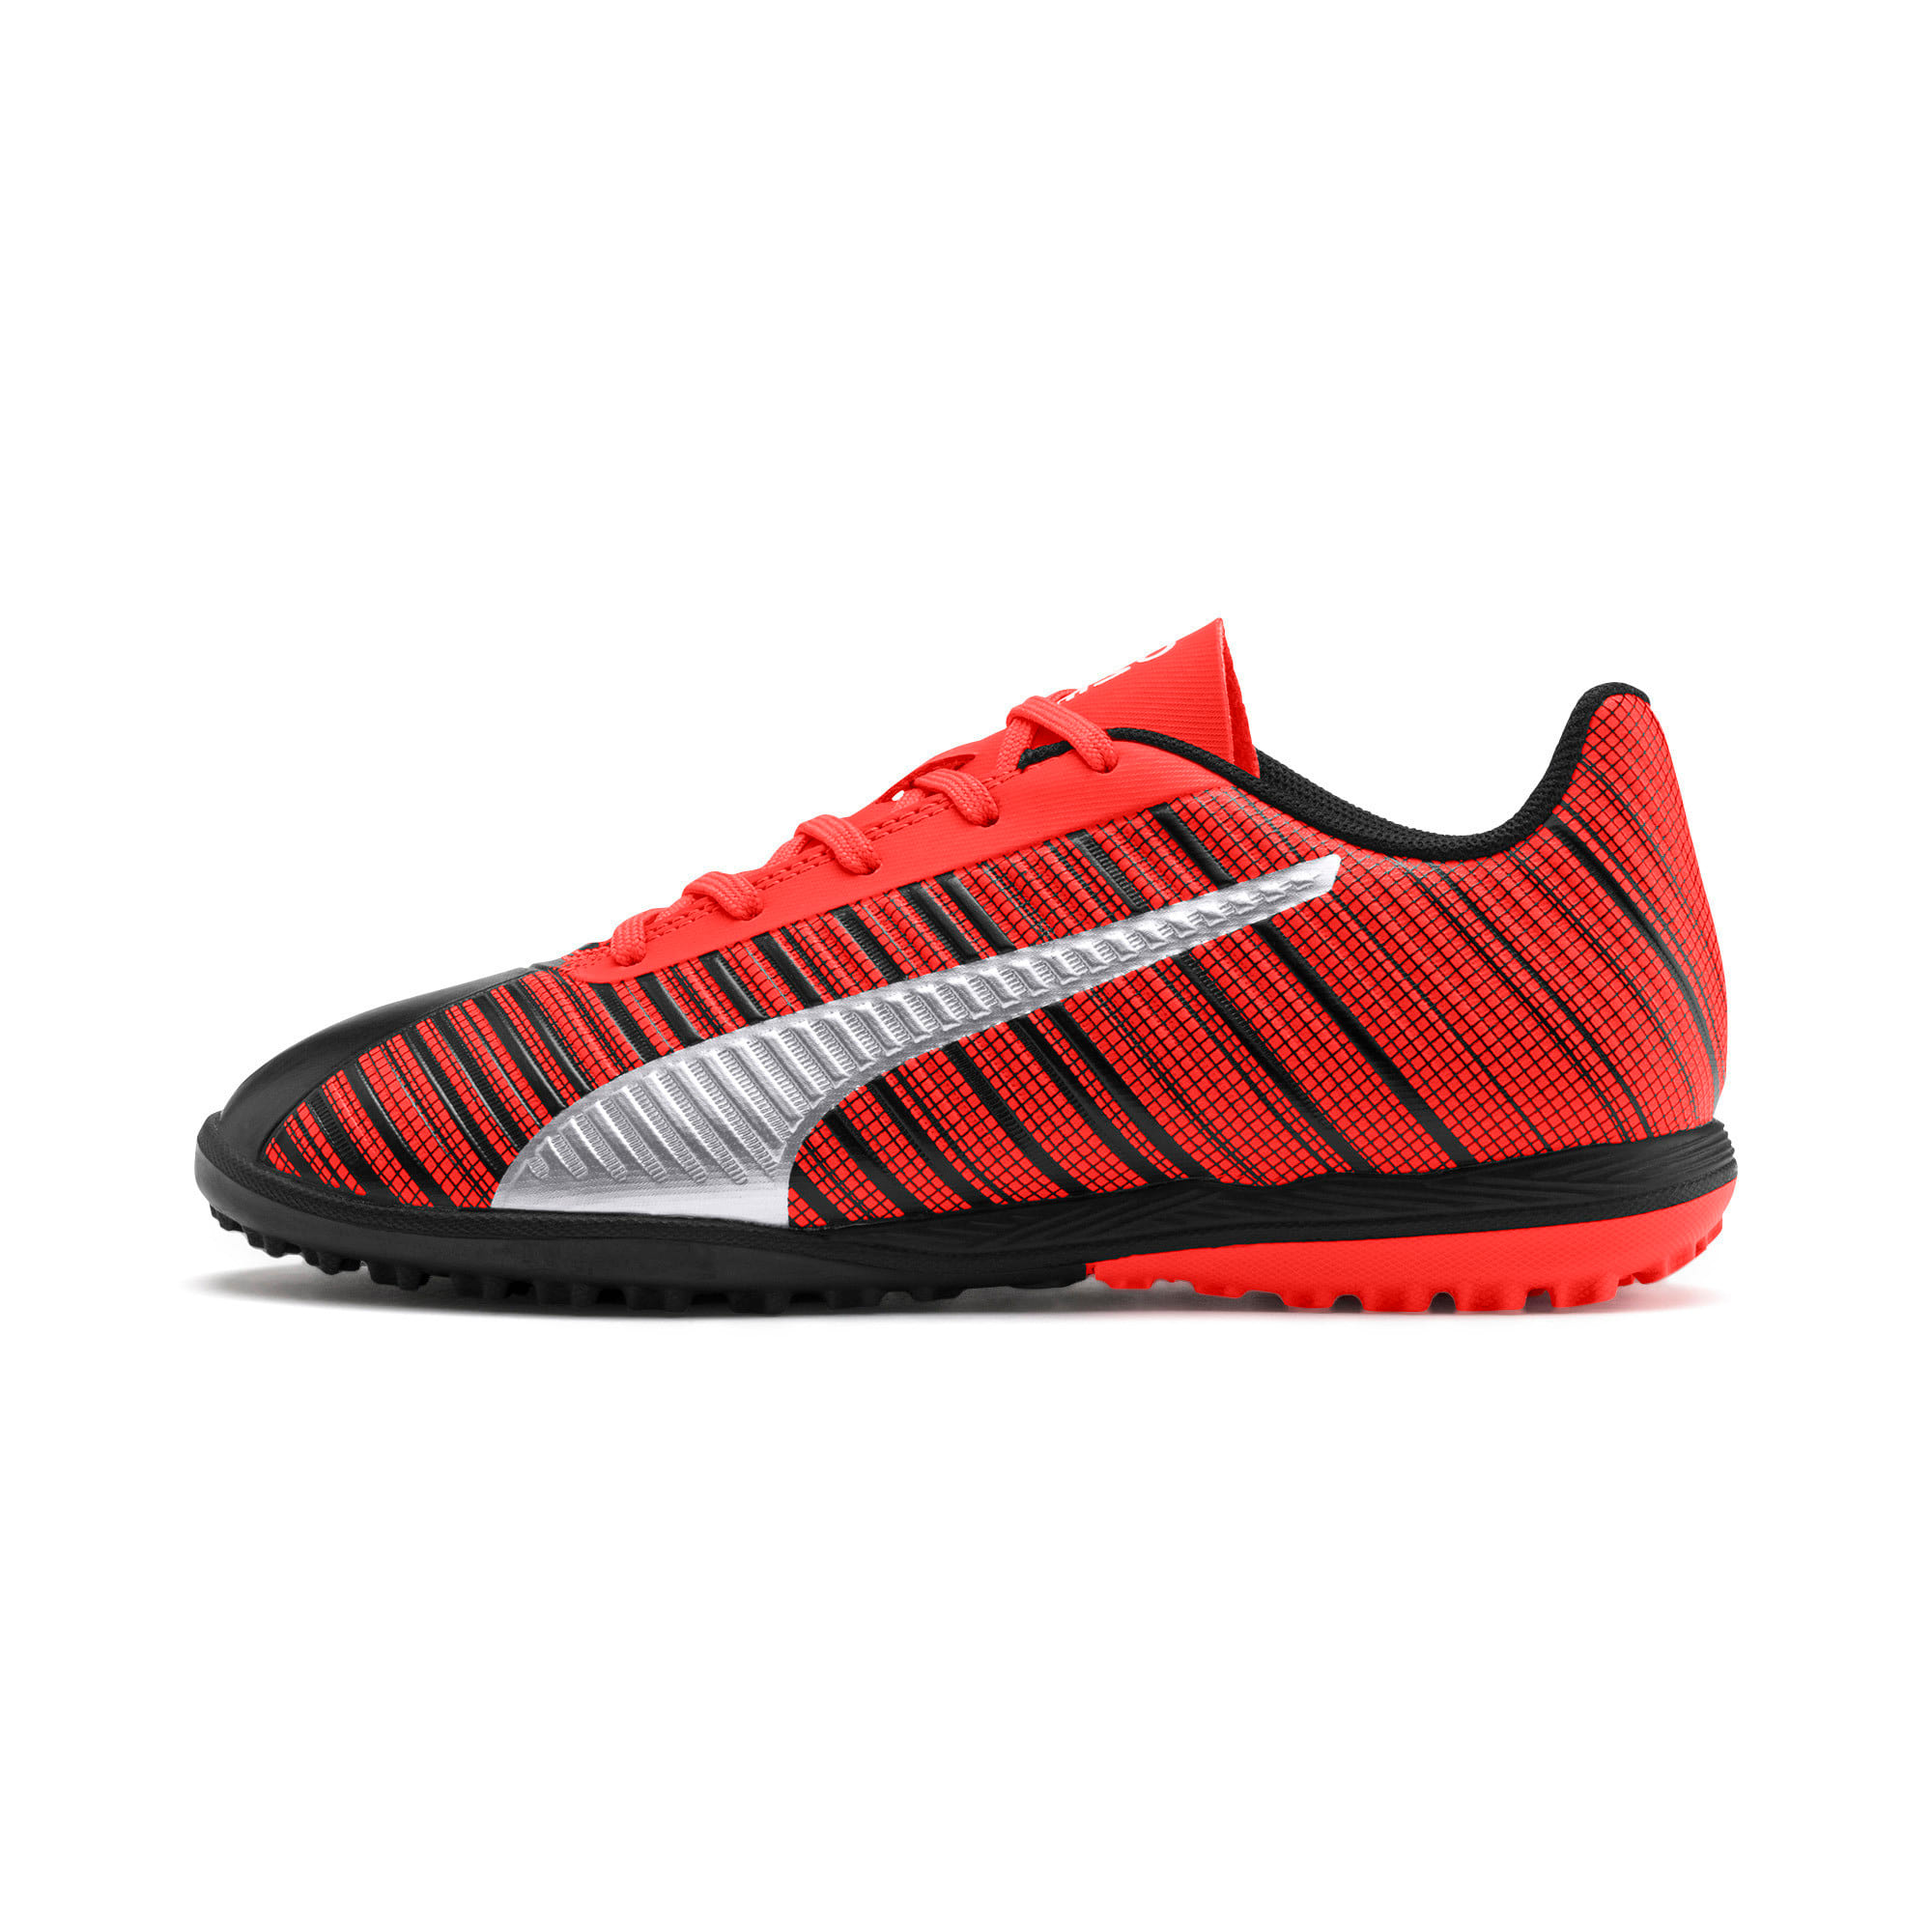 Thumbnail 1 of PUMA ONE 5.4 TT Youth Football Boots, Black-Nrgy Red-Aged Silver, medium